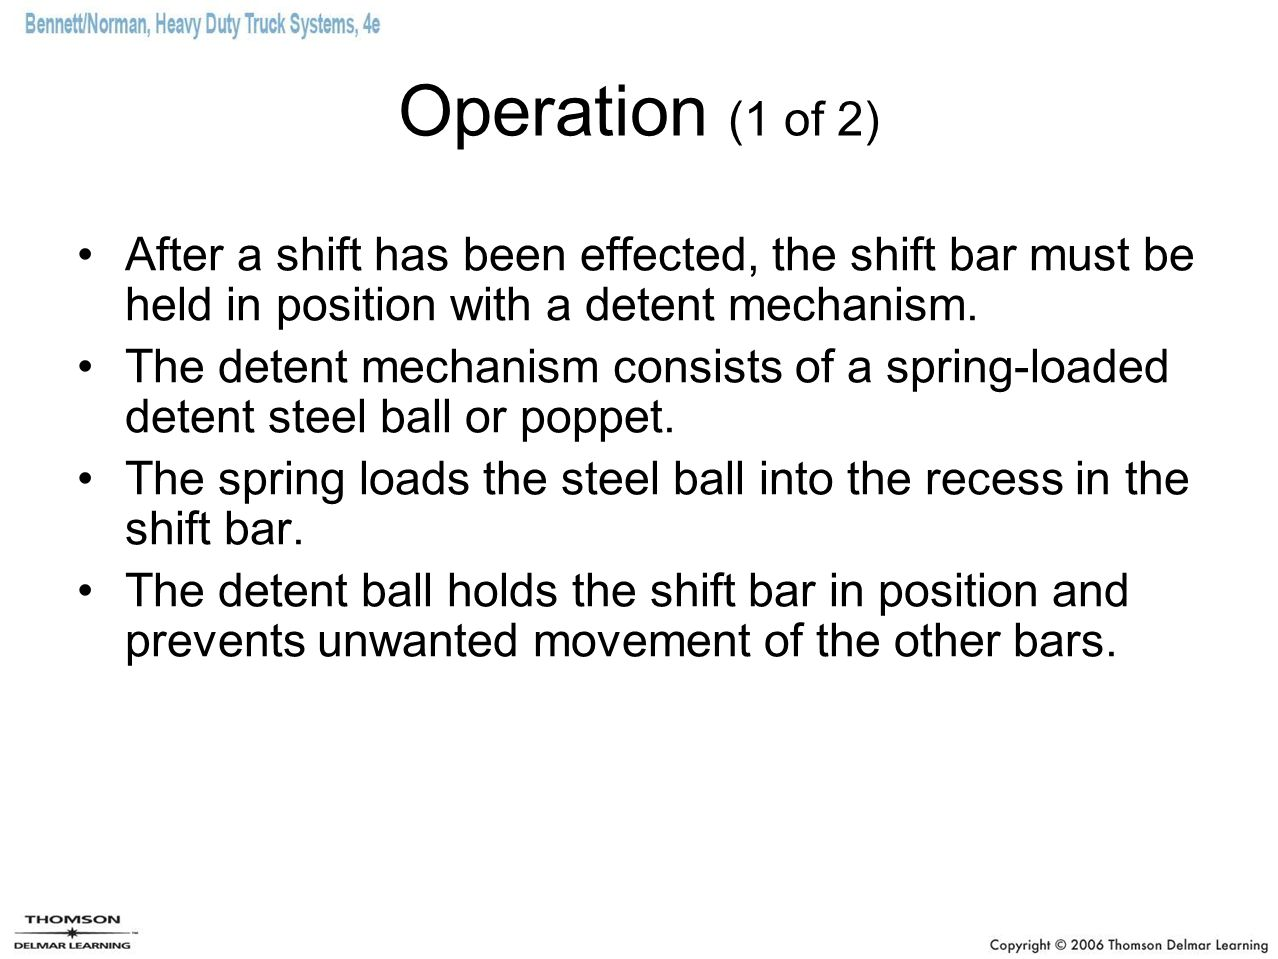 Operation (1 of 2) After a shift has been effected, the shift bar must be held in position with a detent mechanism.